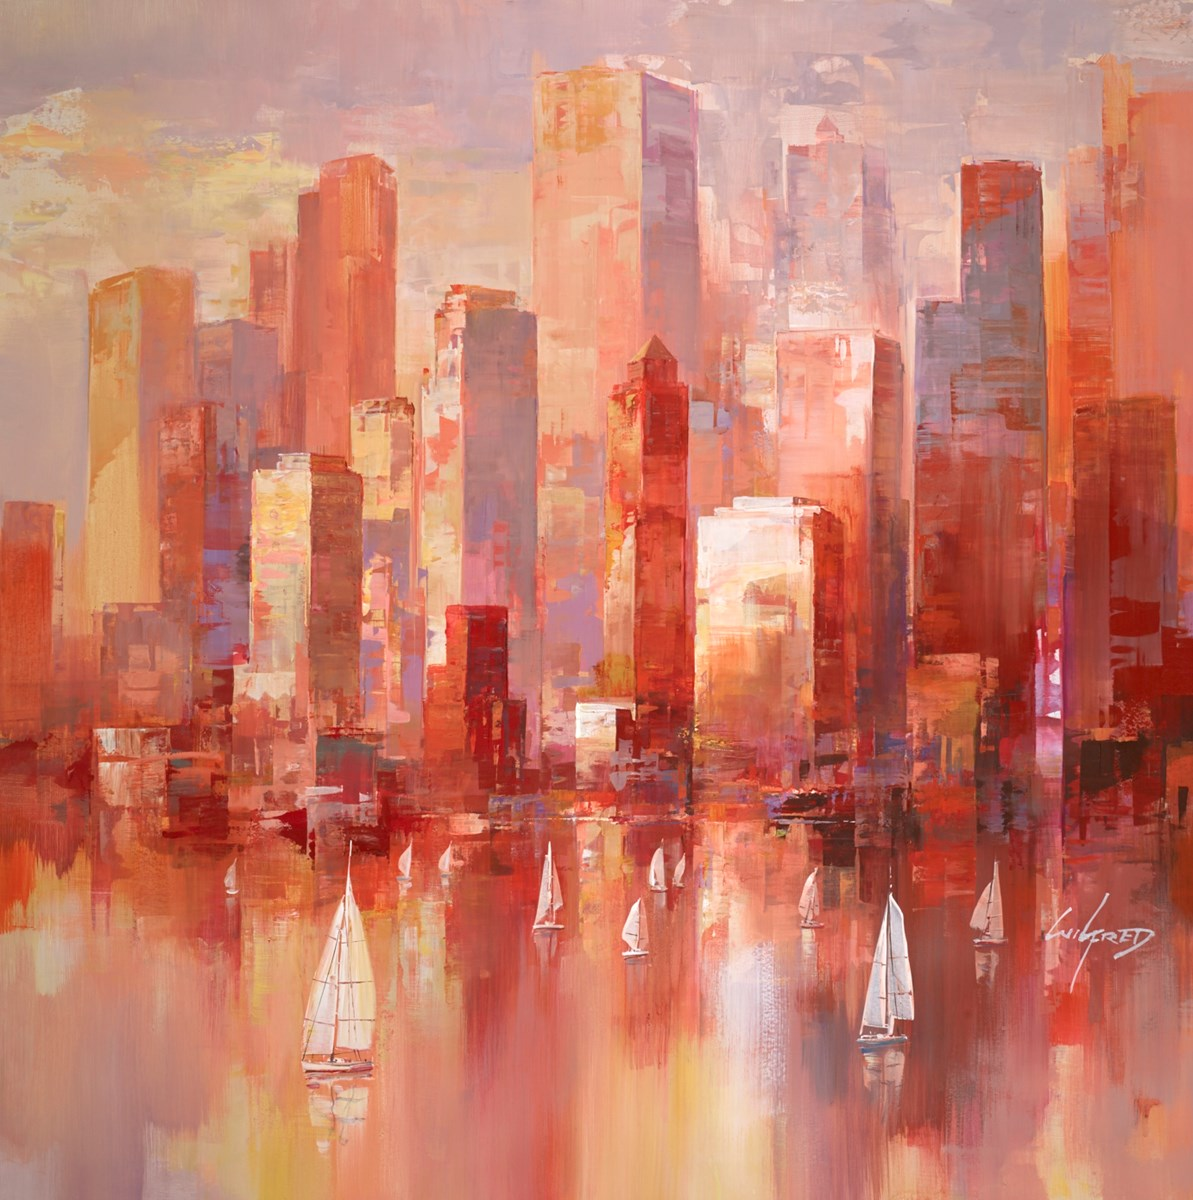 City Sundown V by wilfred -  sized 38x38 inches. Available from Whitewall Galleries